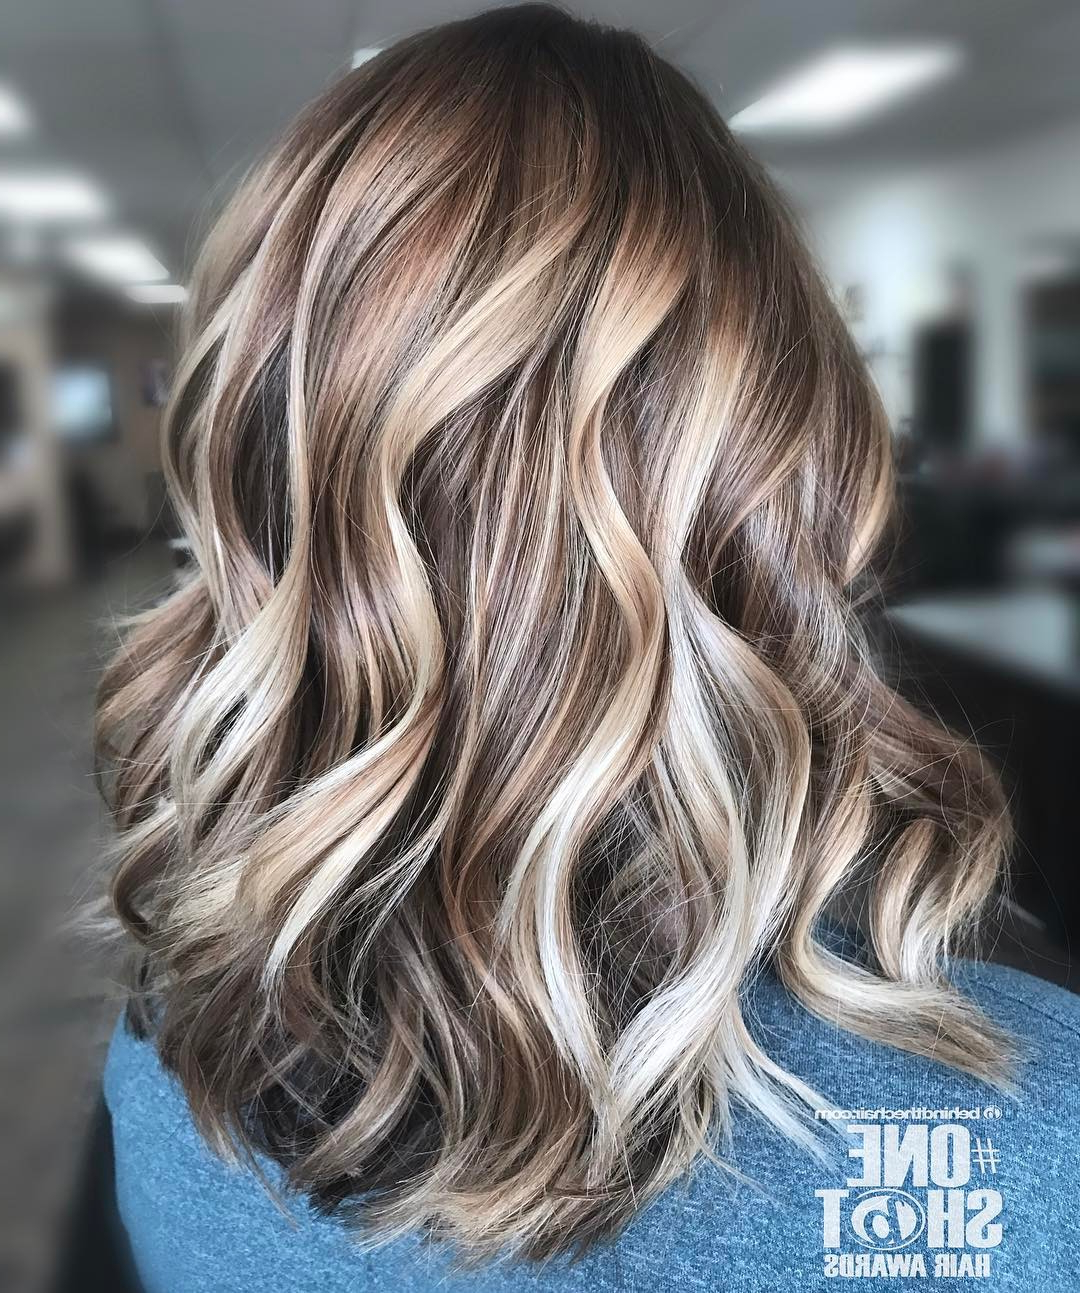 41 Best Balayage Hair Color Ideas 2019   Hairs (View 7 of 20)